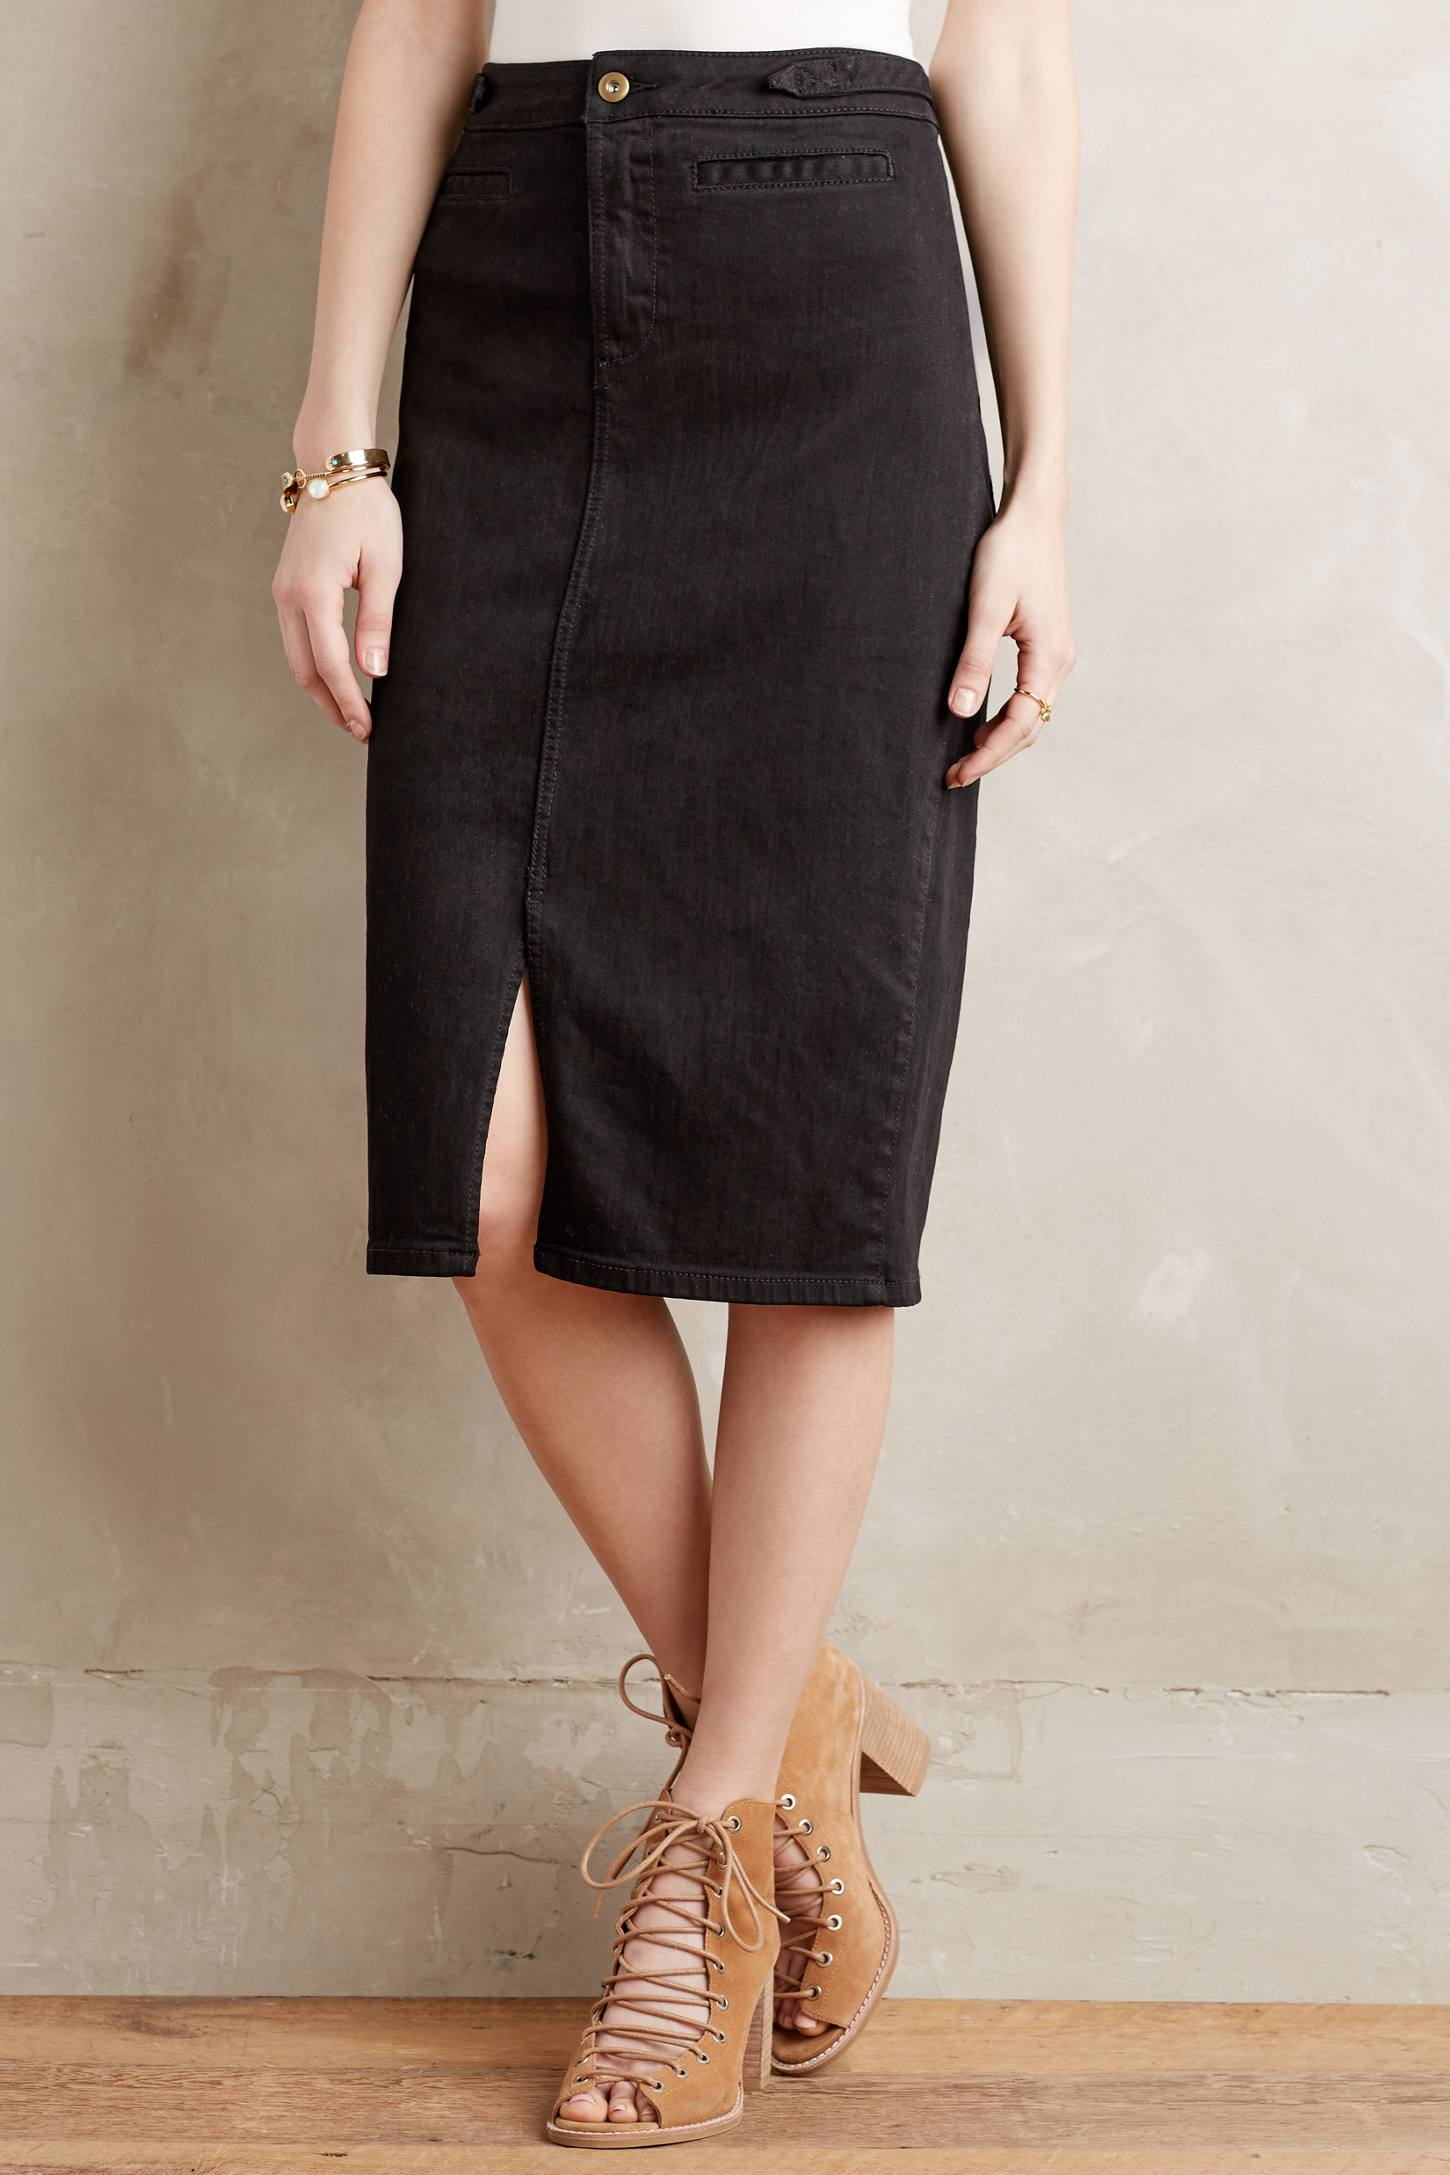 Anthropologie Denim Pencil Skirt in Black | Lyst